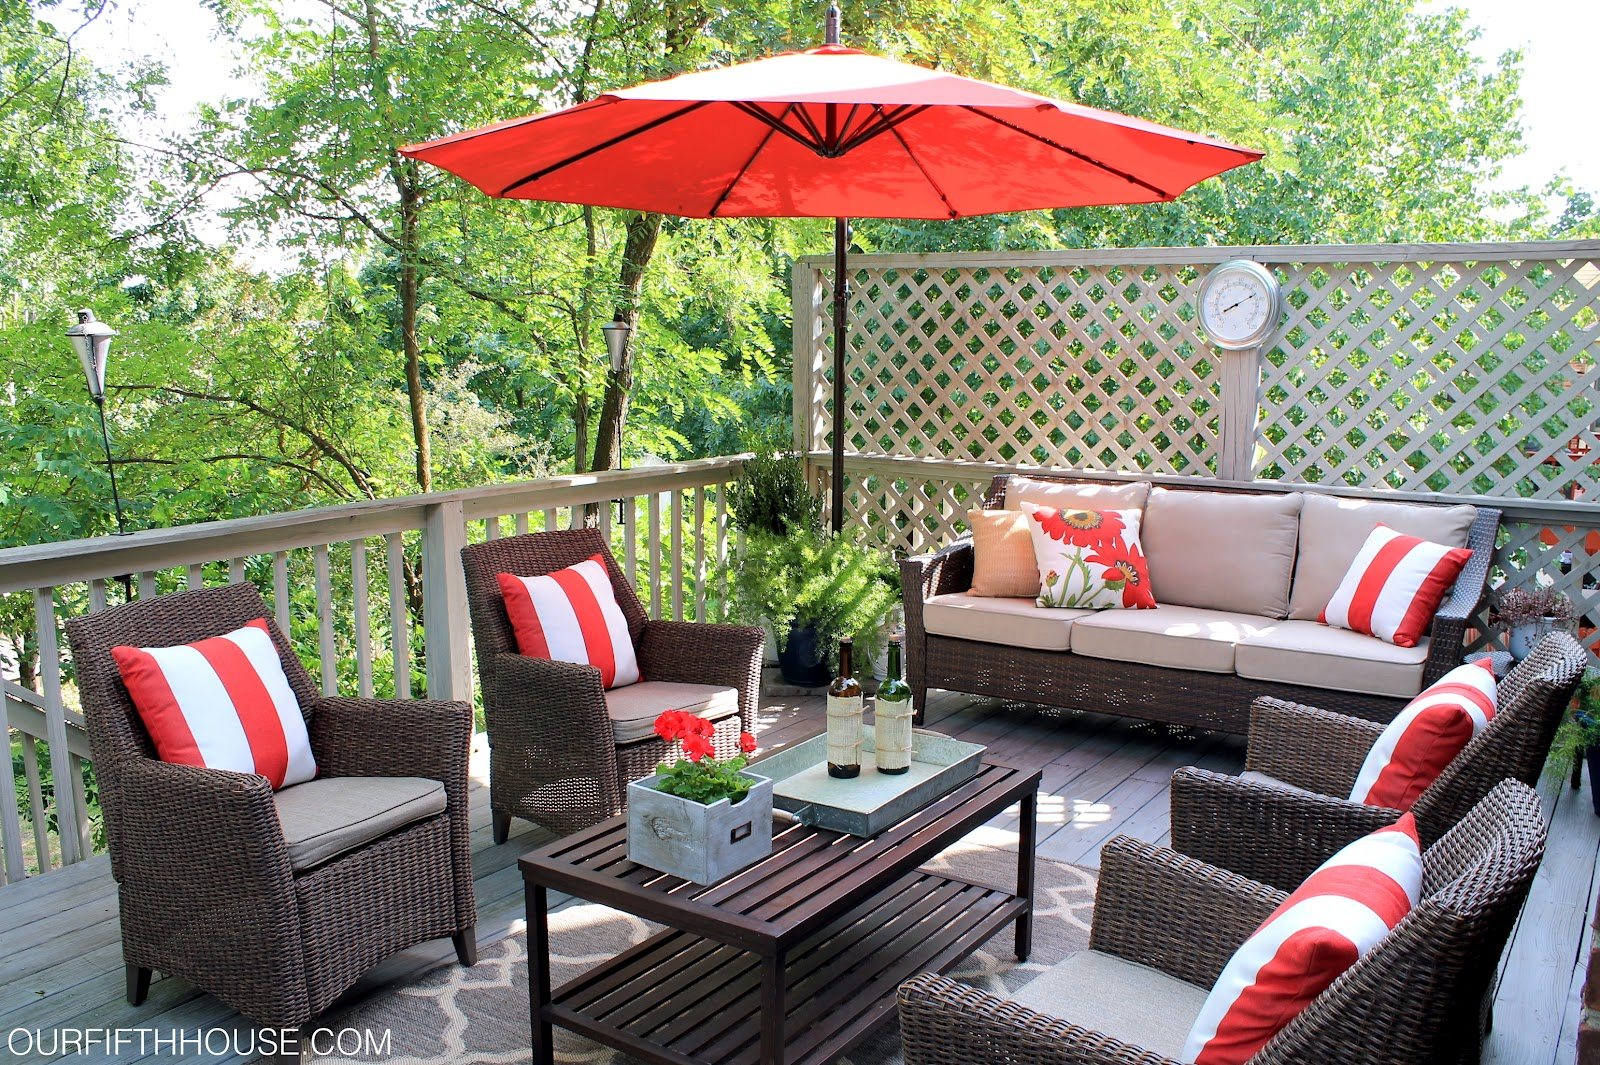 Outdoor living deck updates our fifth house for Outdoor furniture designers